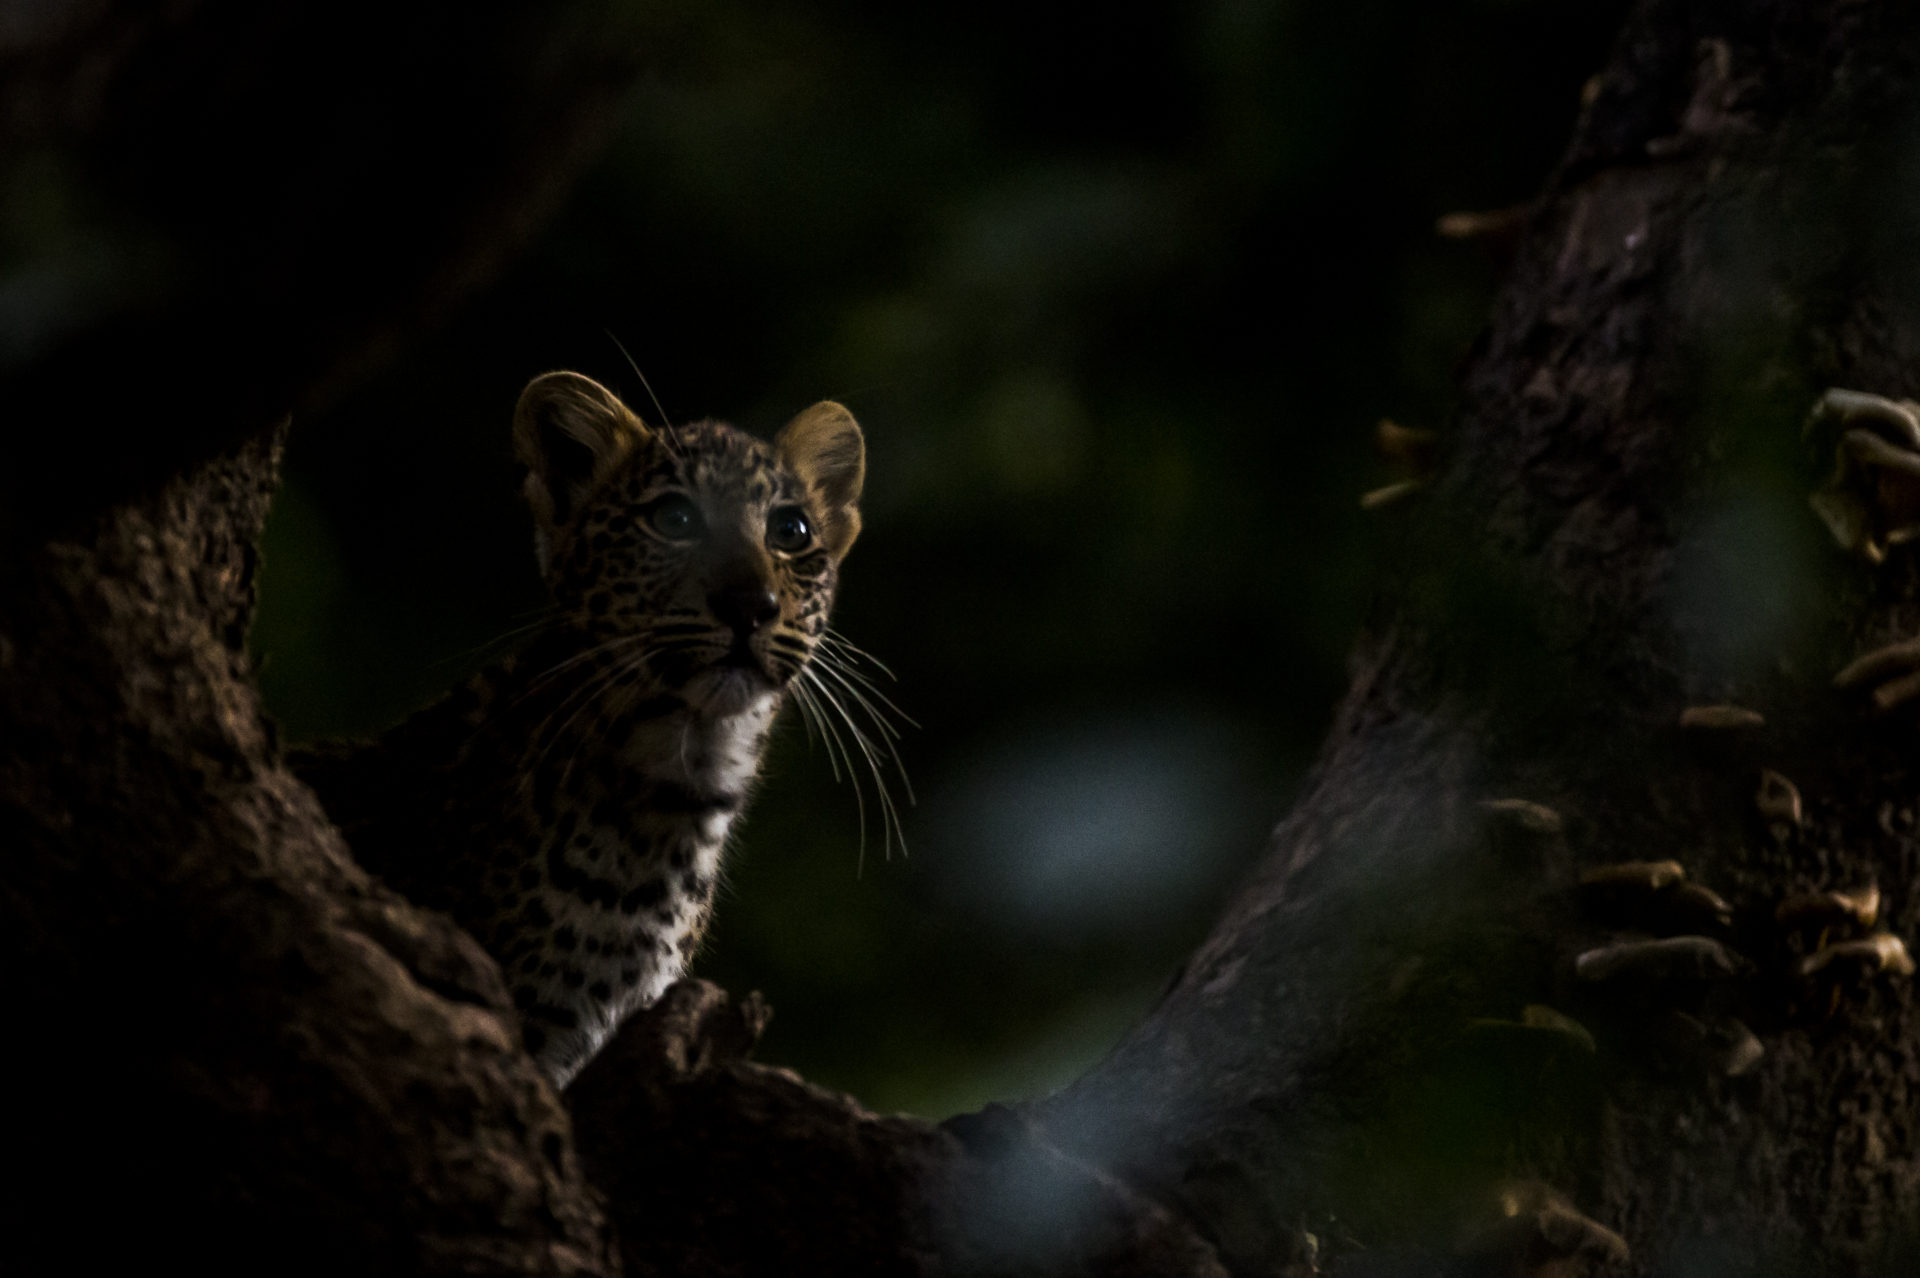 It took 2 weeks to find the cubs as they hid amongst the undergrowth and up trees.